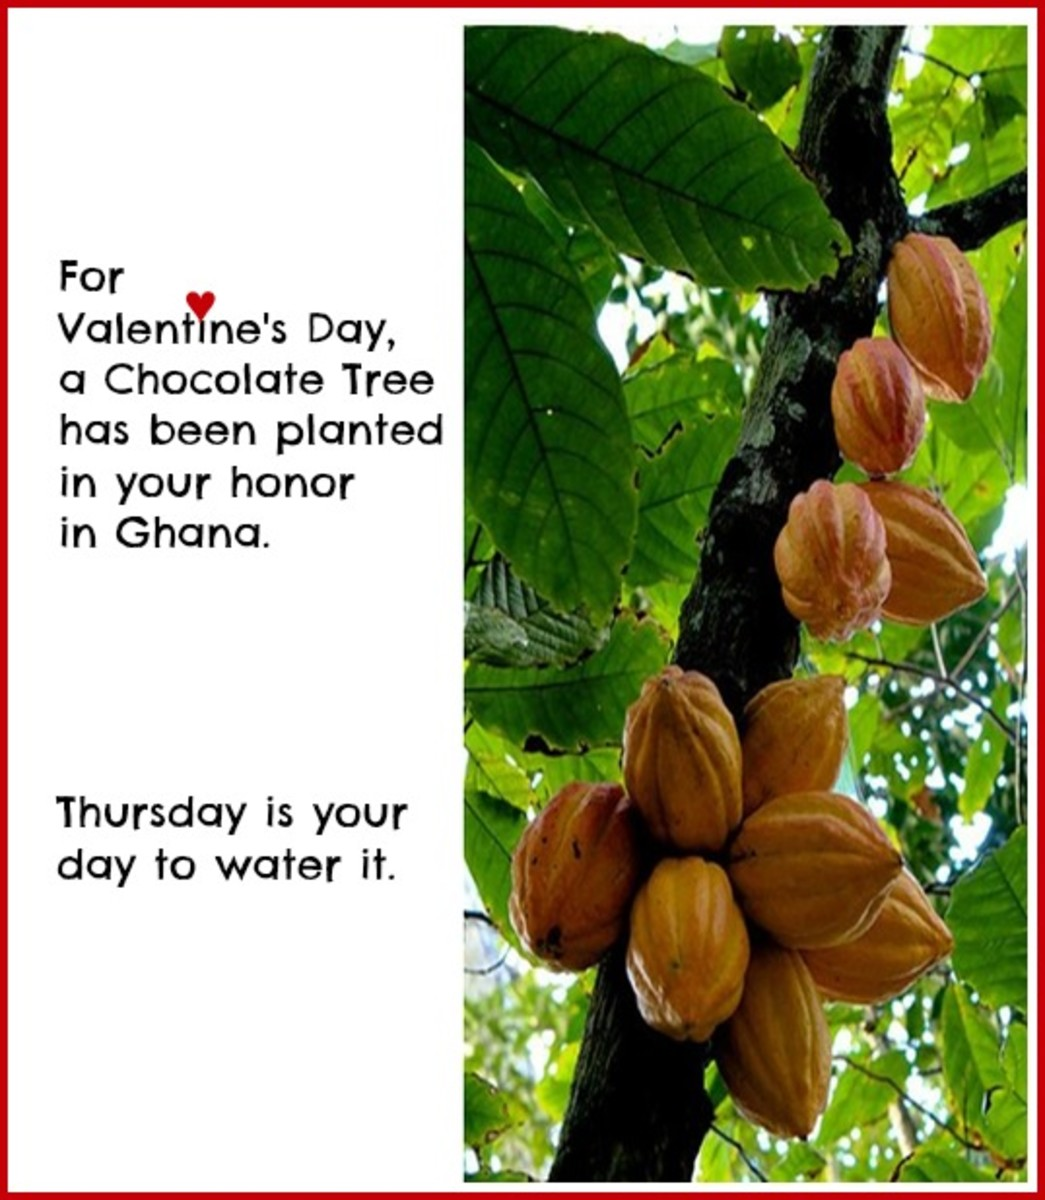 Funny Card about the Chocolate Tree